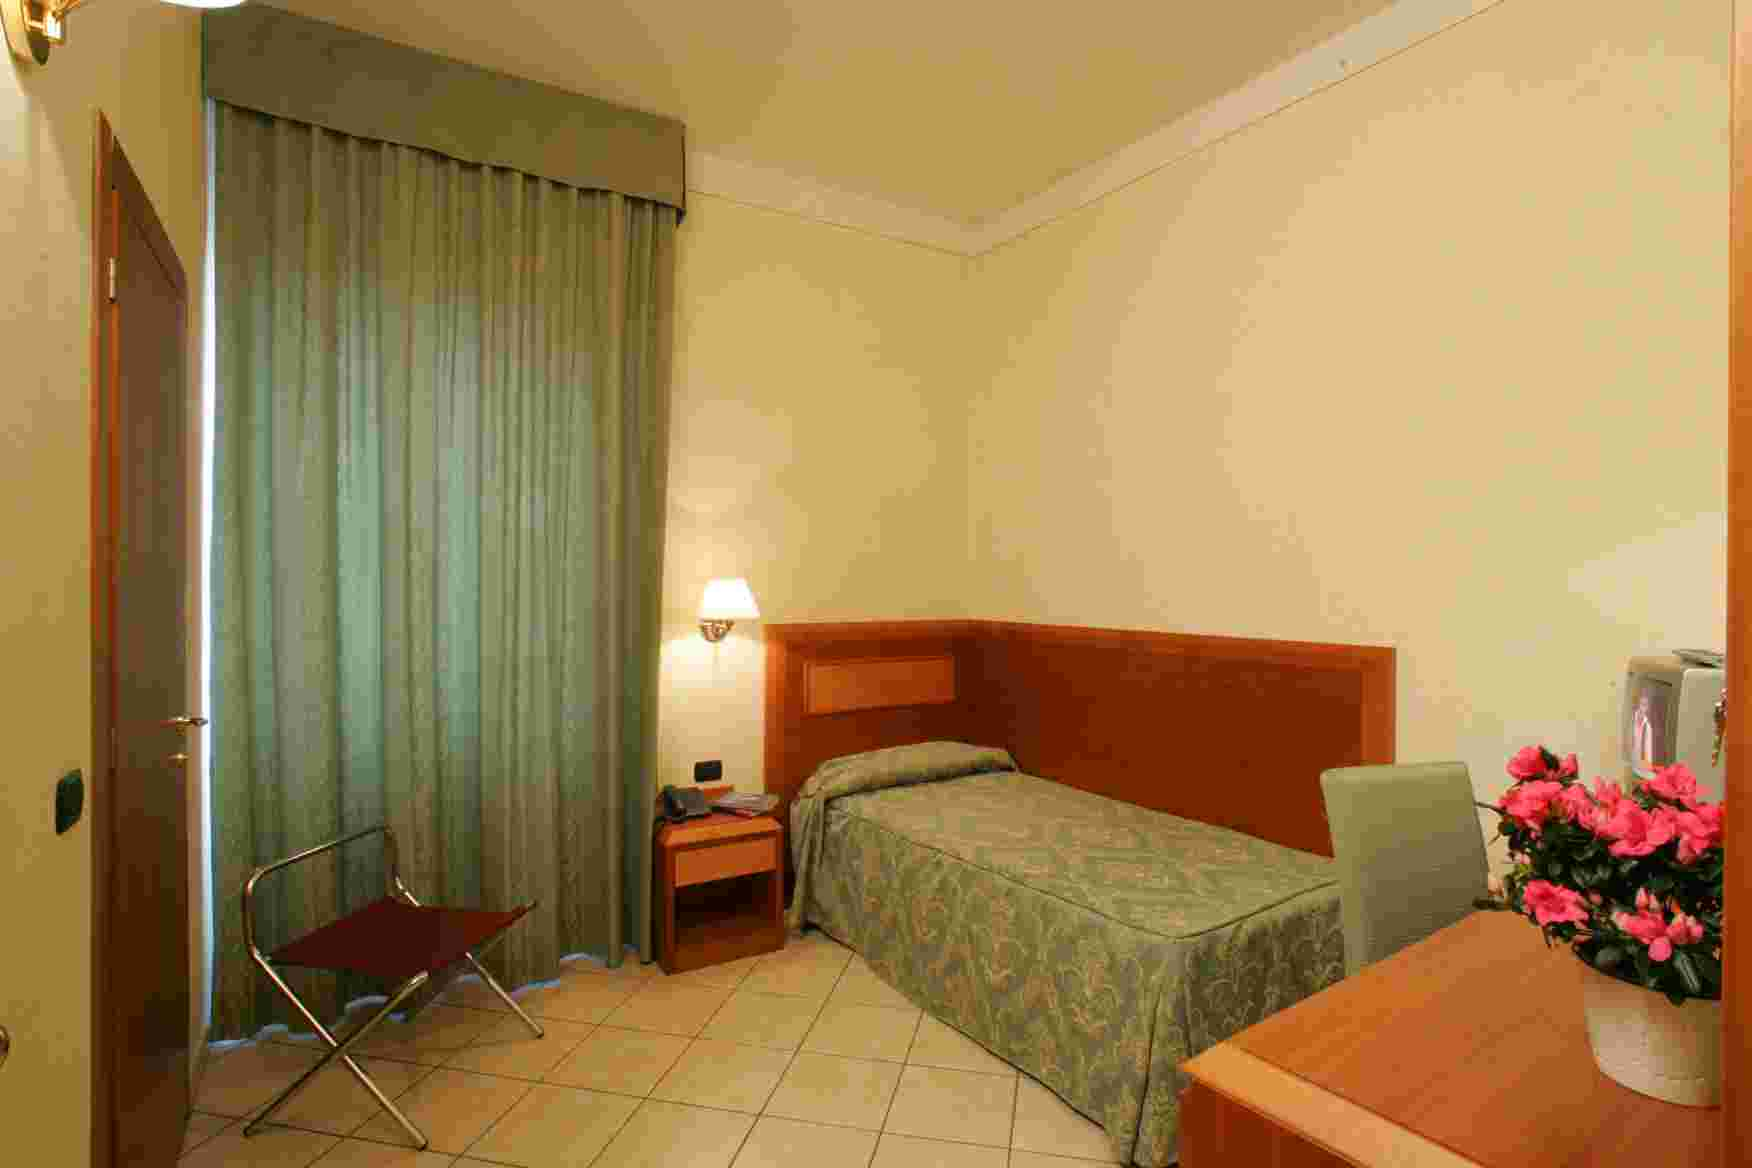 Hotel Mia Cara, Florence, Italy, hotel and hostel world best places to stay in Florence